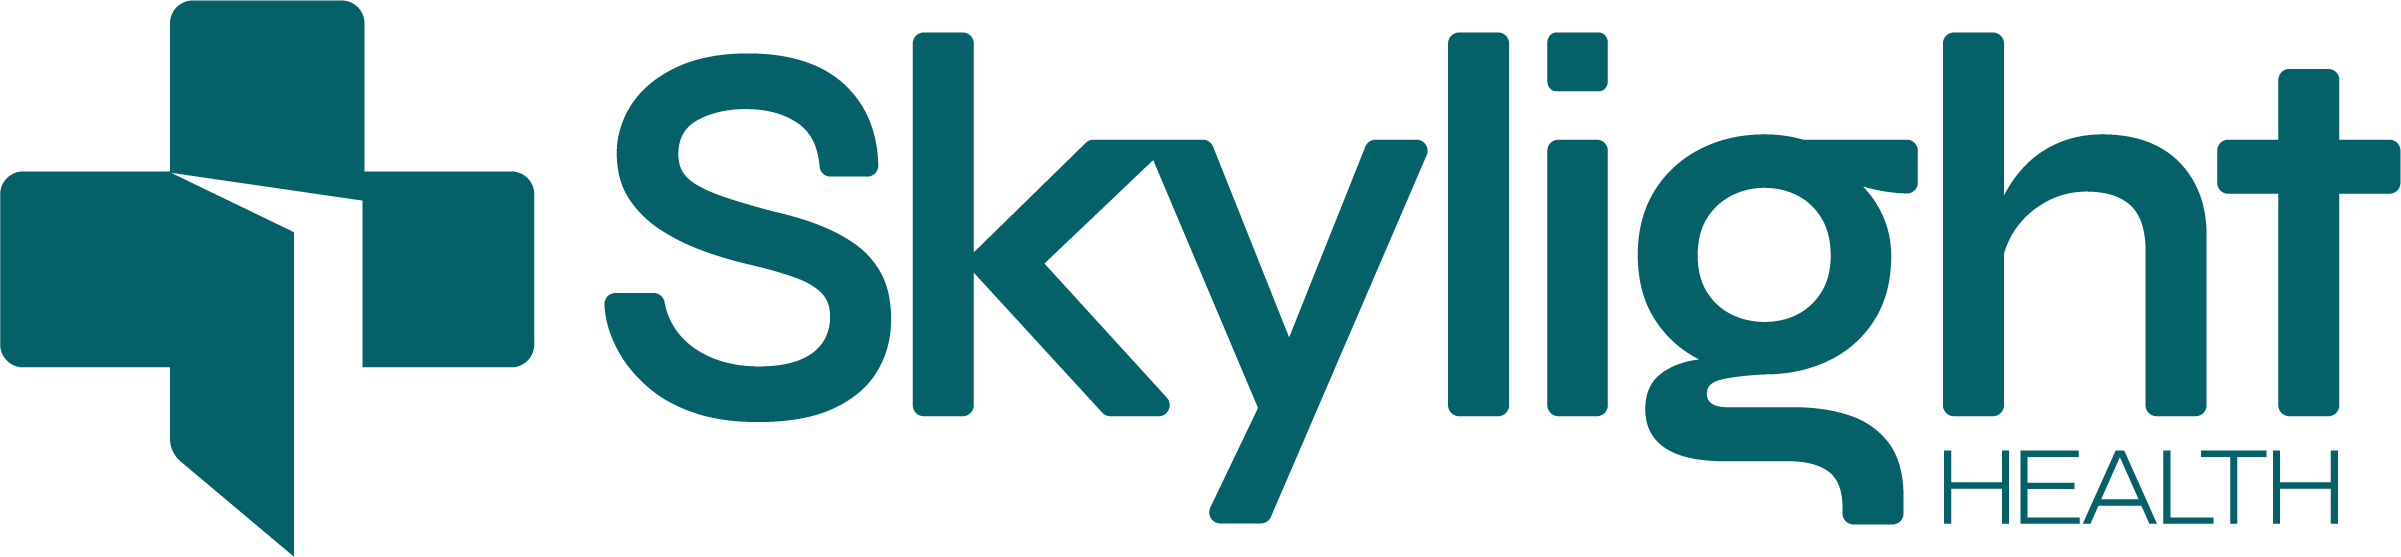 Skylight Health to Acquire 3 US Primary Care Practices with Over $10M Revenue and Positive EBITDA